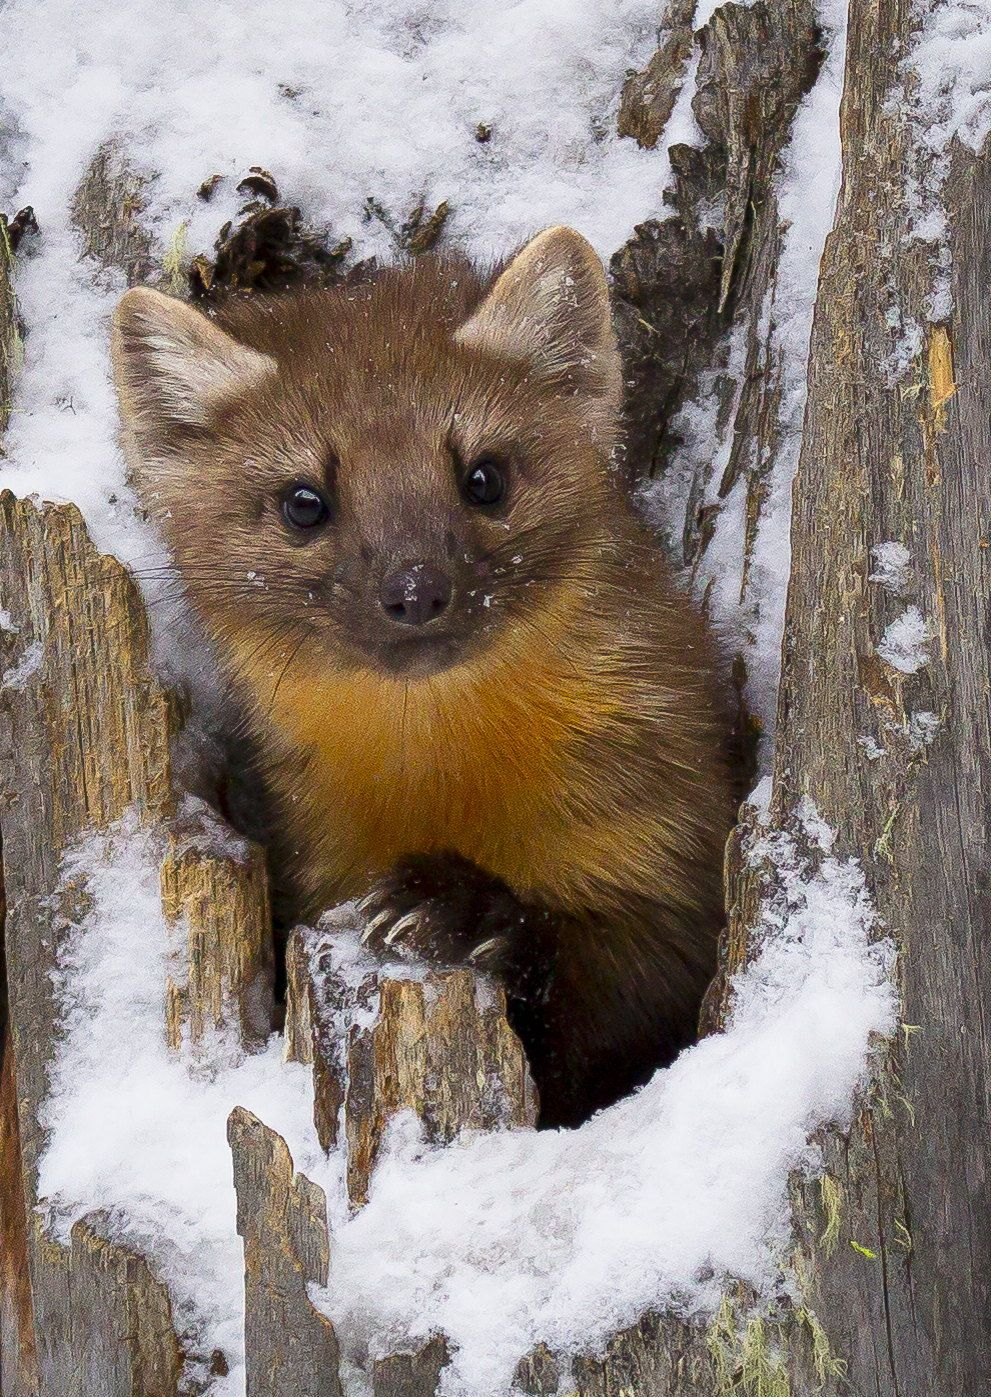 One of two pine martens romping in tree stumps on a very